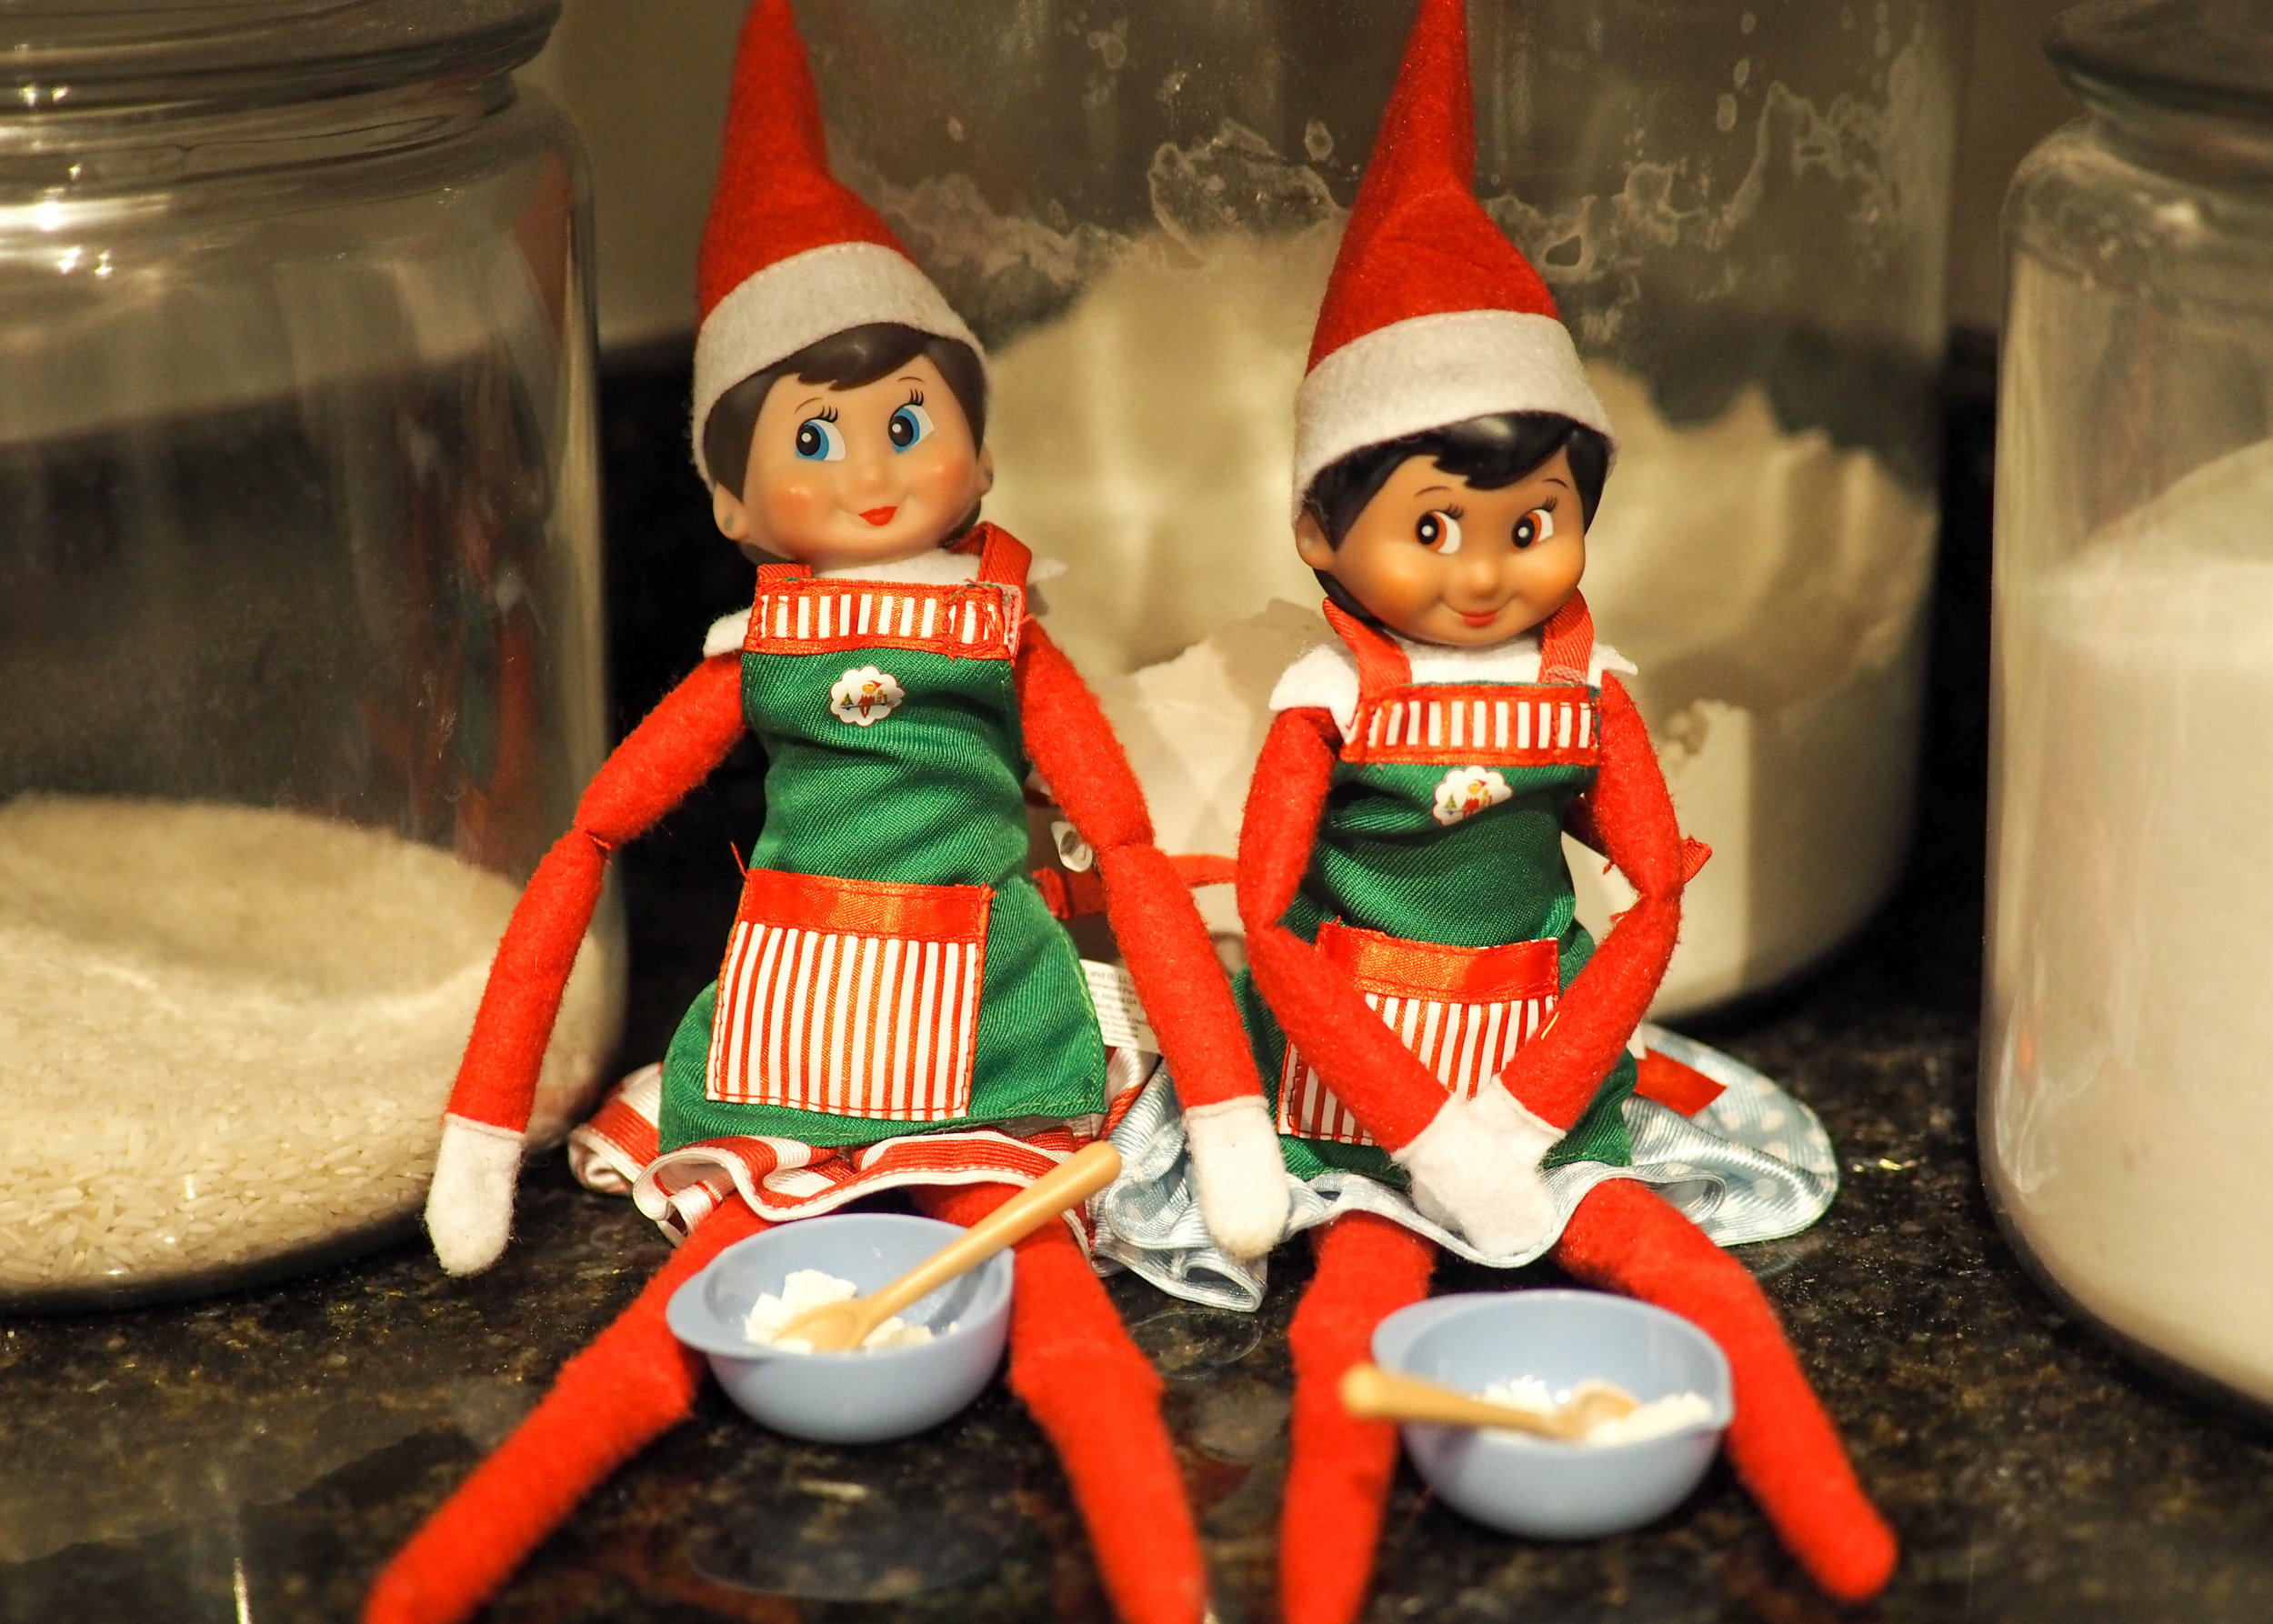 Our elves joined us in the baking festivities this year!